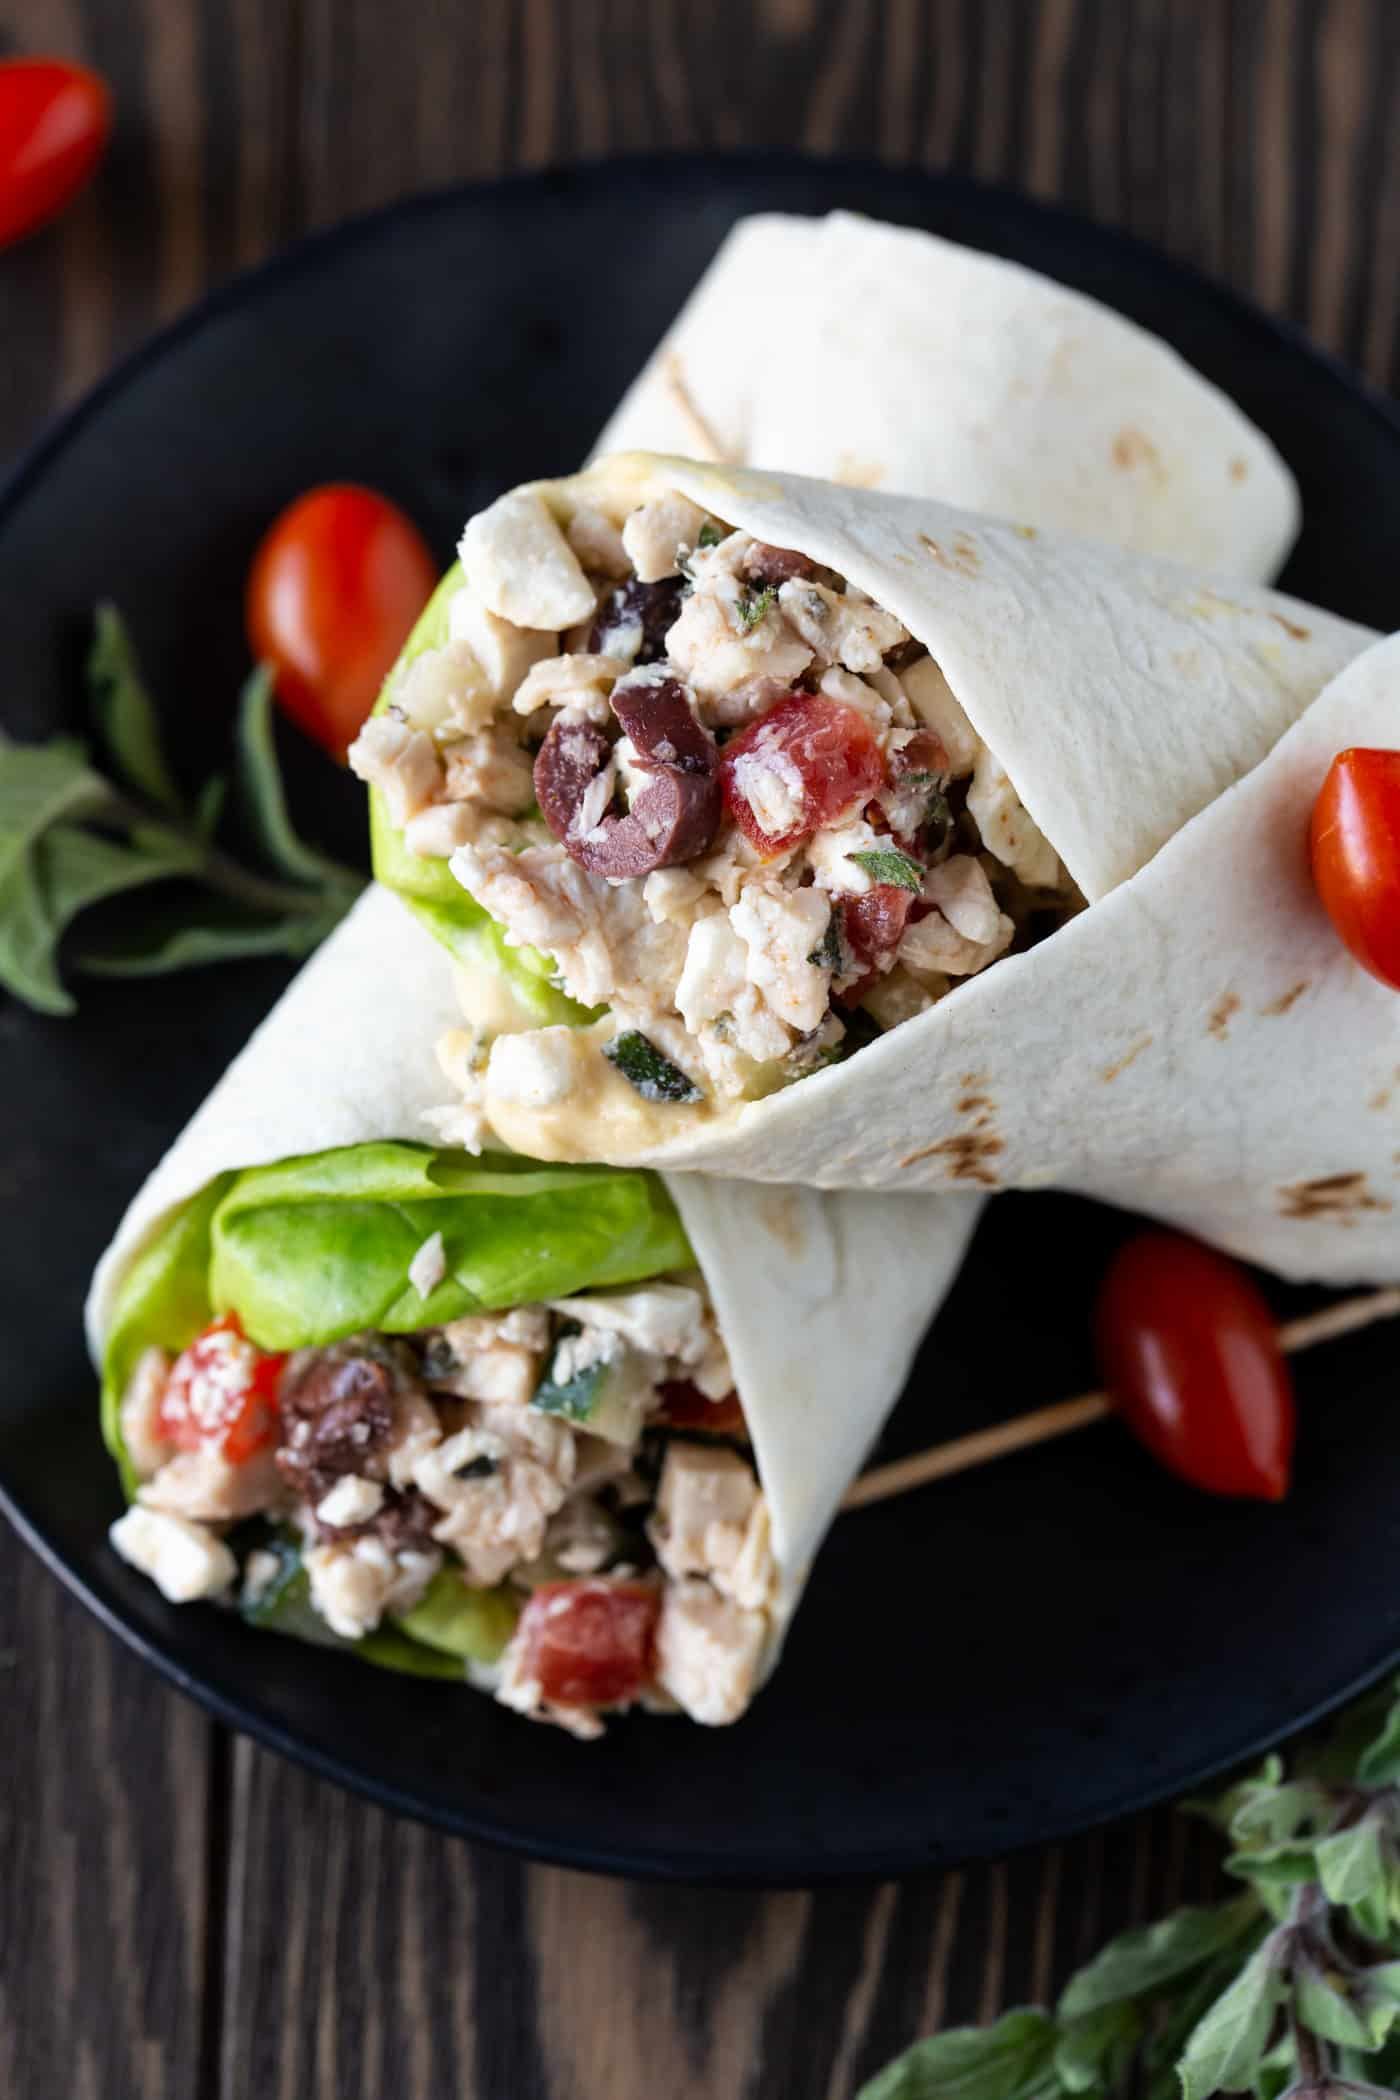 Two Greek Chicken Wraps on a plate garnished with fresh lettuce and tomatoes.